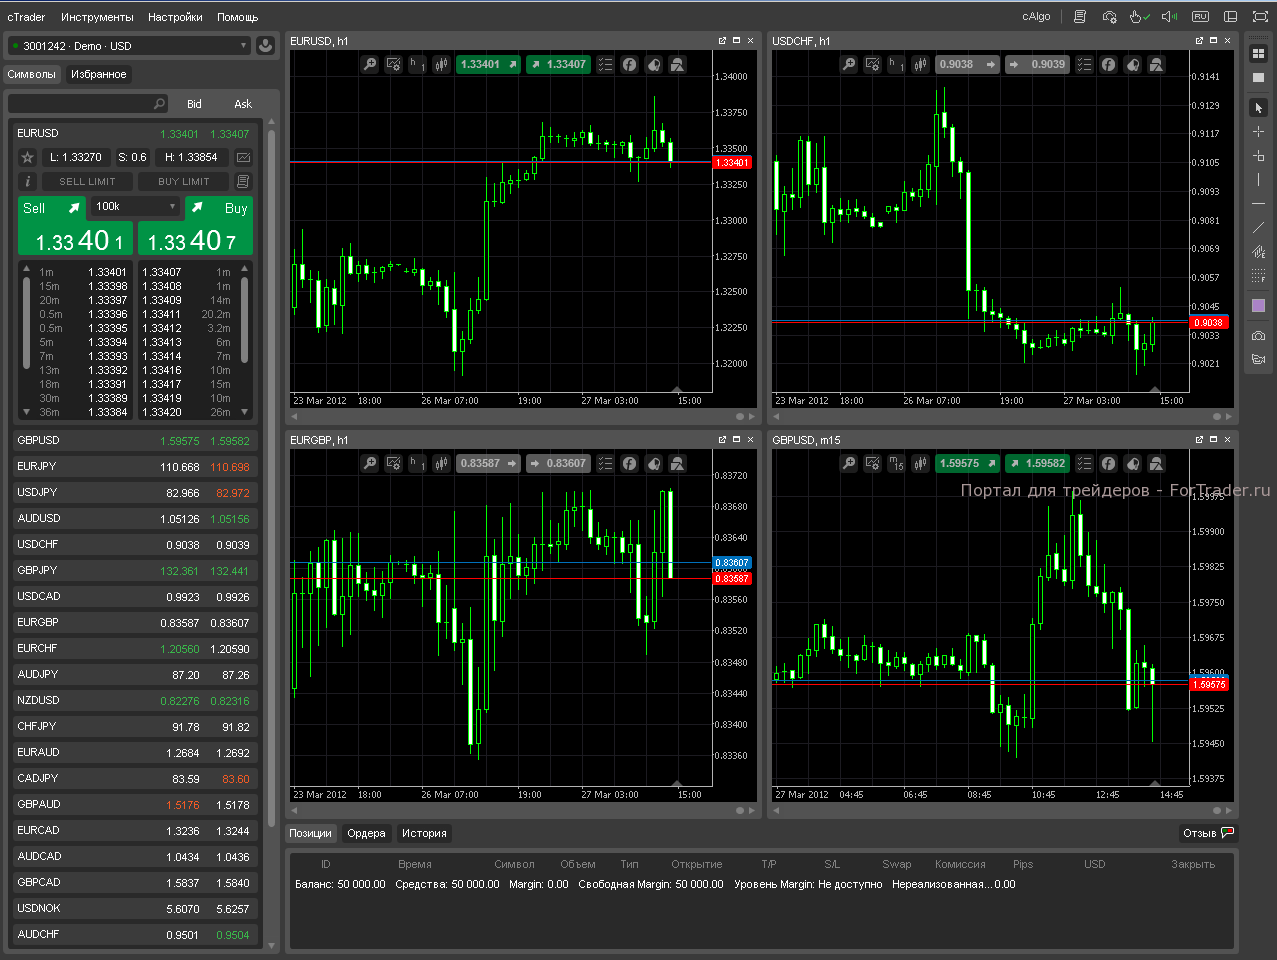 How To Keep Drawings On Ctrader Charts Stock Market Scalping Strategies Serralheria Dois Irmaos Piracicaba